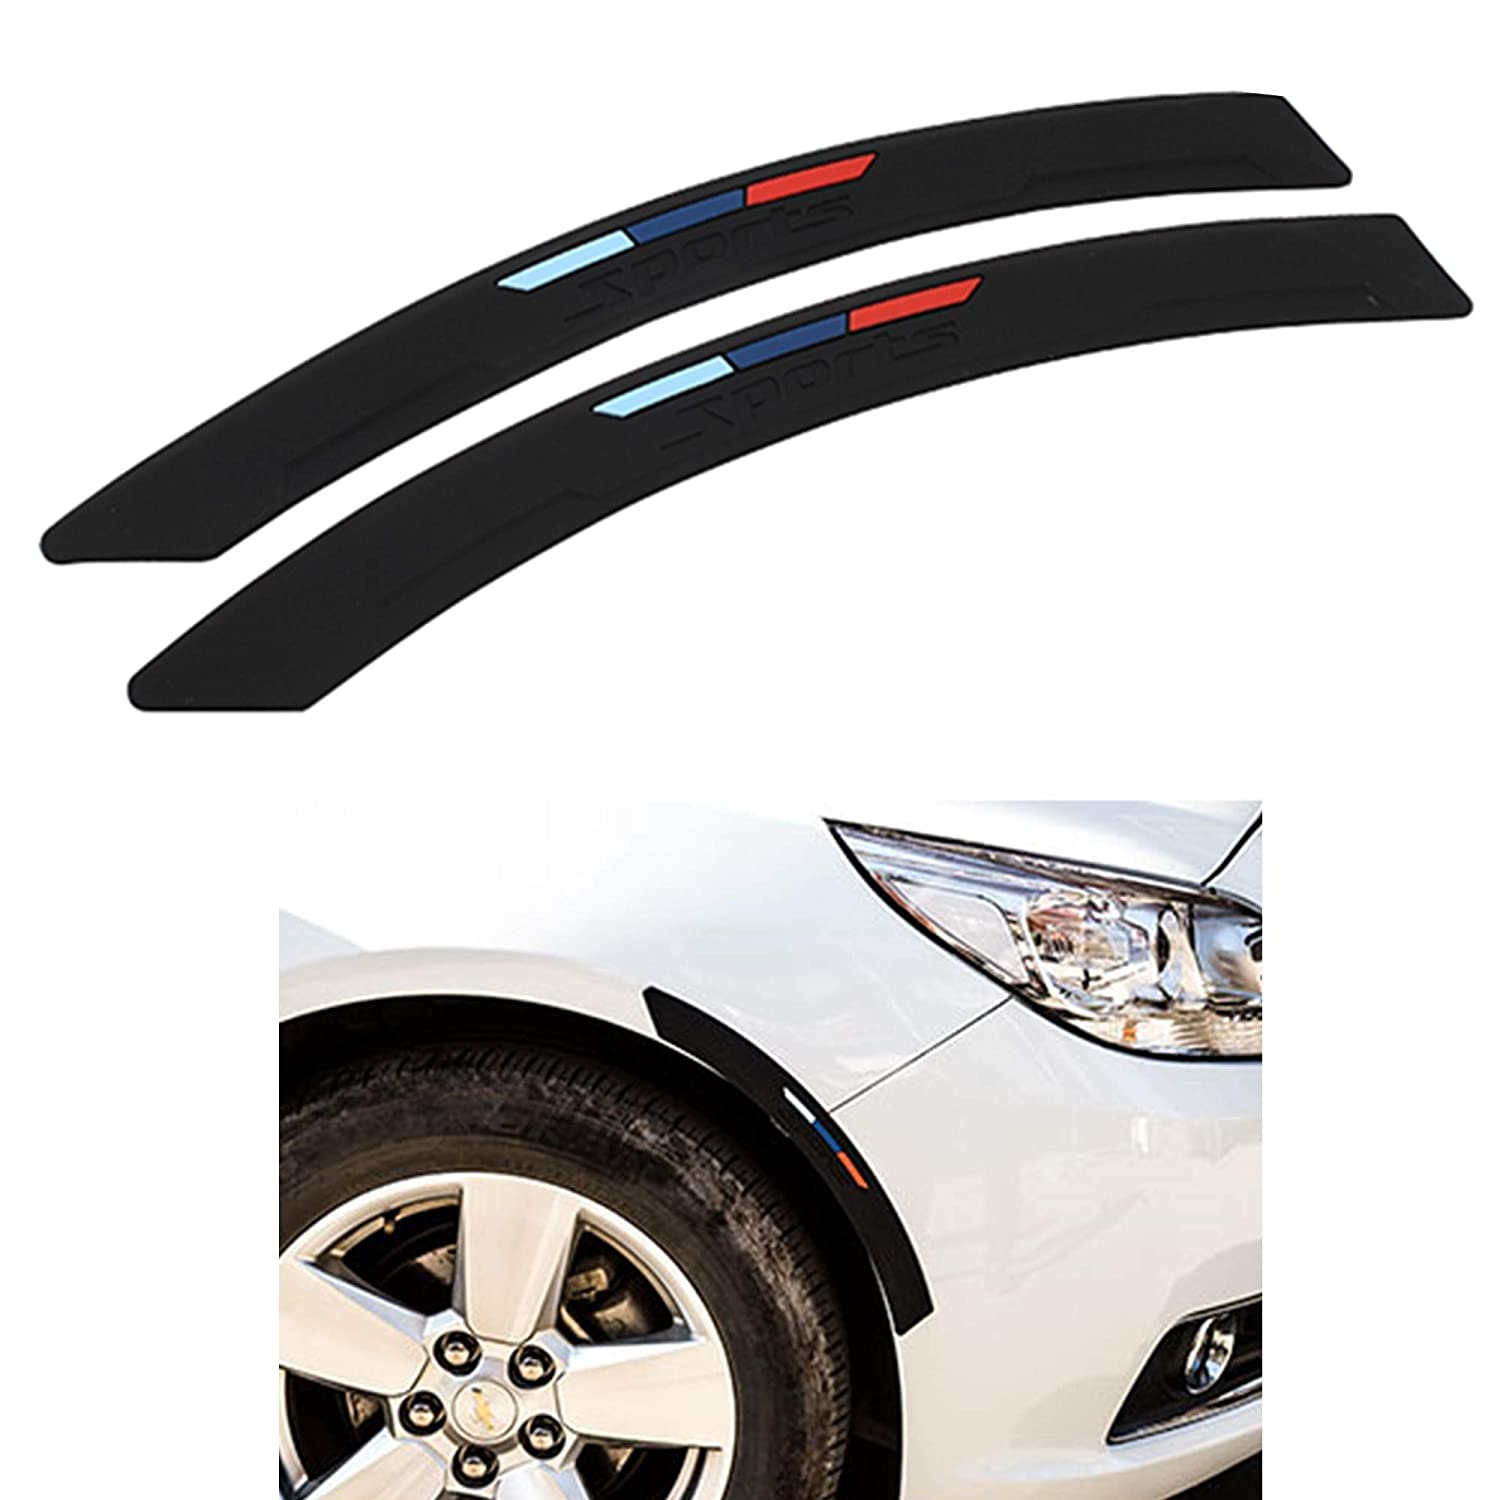 COSMOSS Car Front Rear Bumper Protector Corner Guard Rubber Strips Side Bumper Protection Guard Automobile Anti-Scratch Corner Pad Fit Most Car SUV Pickup Truck (Black, 40-cm Straight)